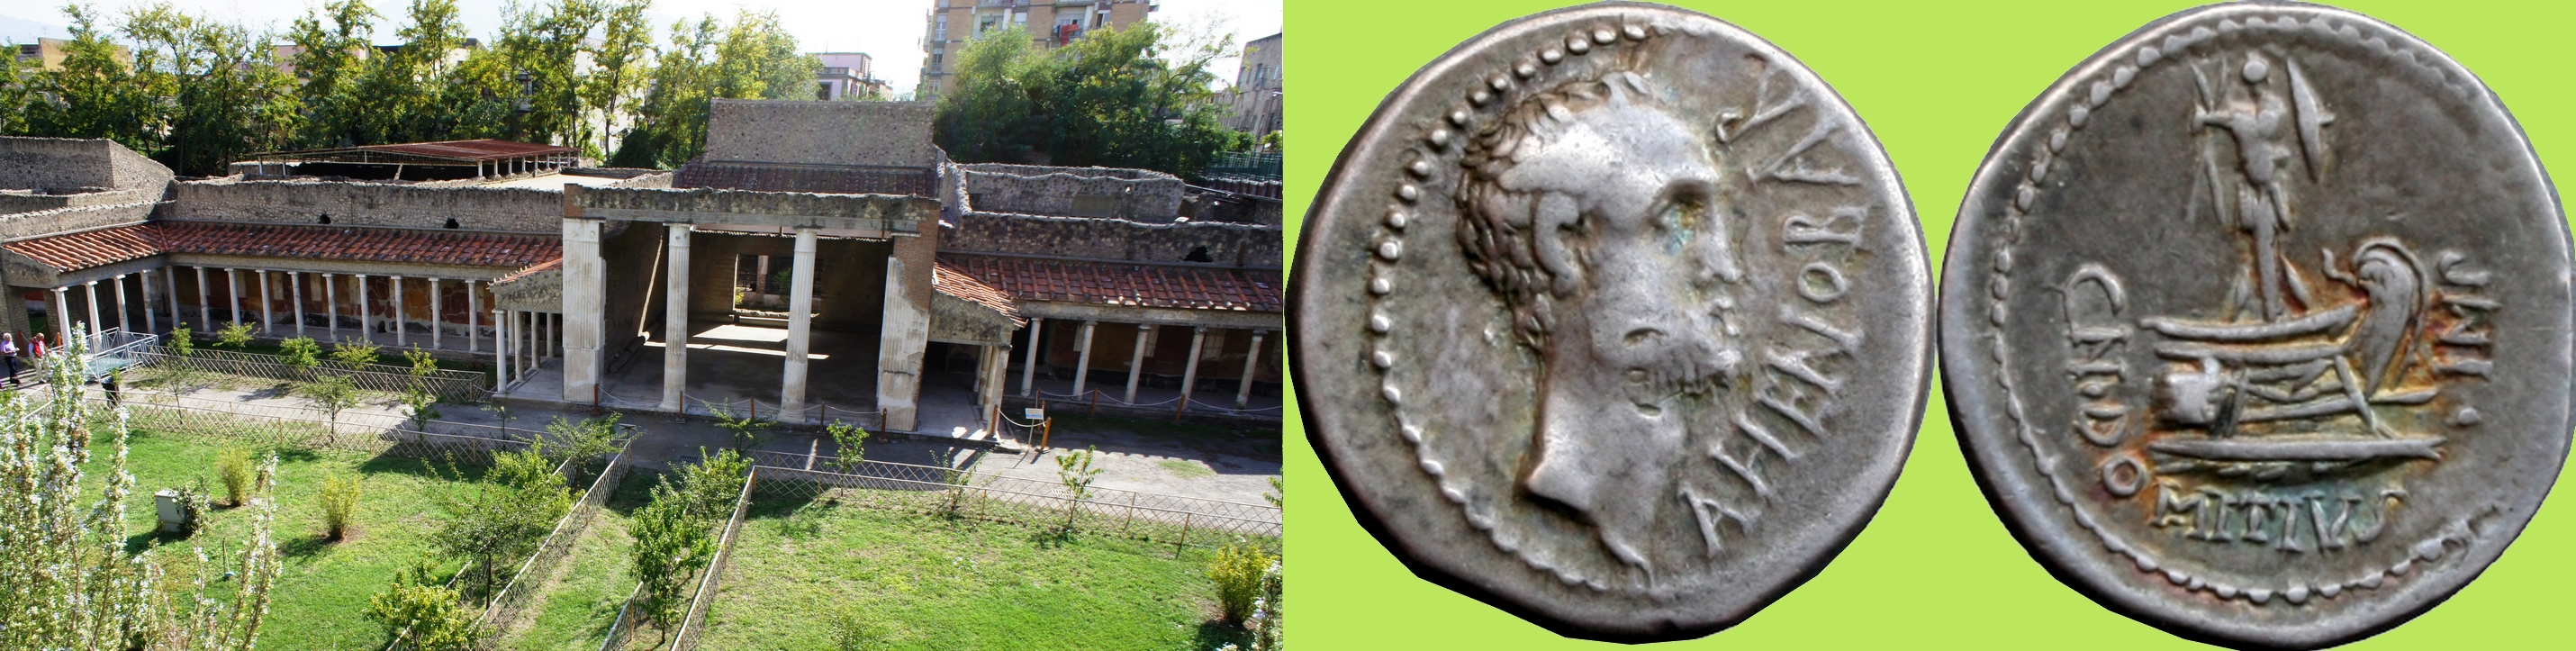 519/2 coin of Domitius Ahenobarbus, Consul 32BC, great-grandfather of the Emperor Nero, alongside the Oplontis Palace of Poppaea, wife of the Emperor Nero